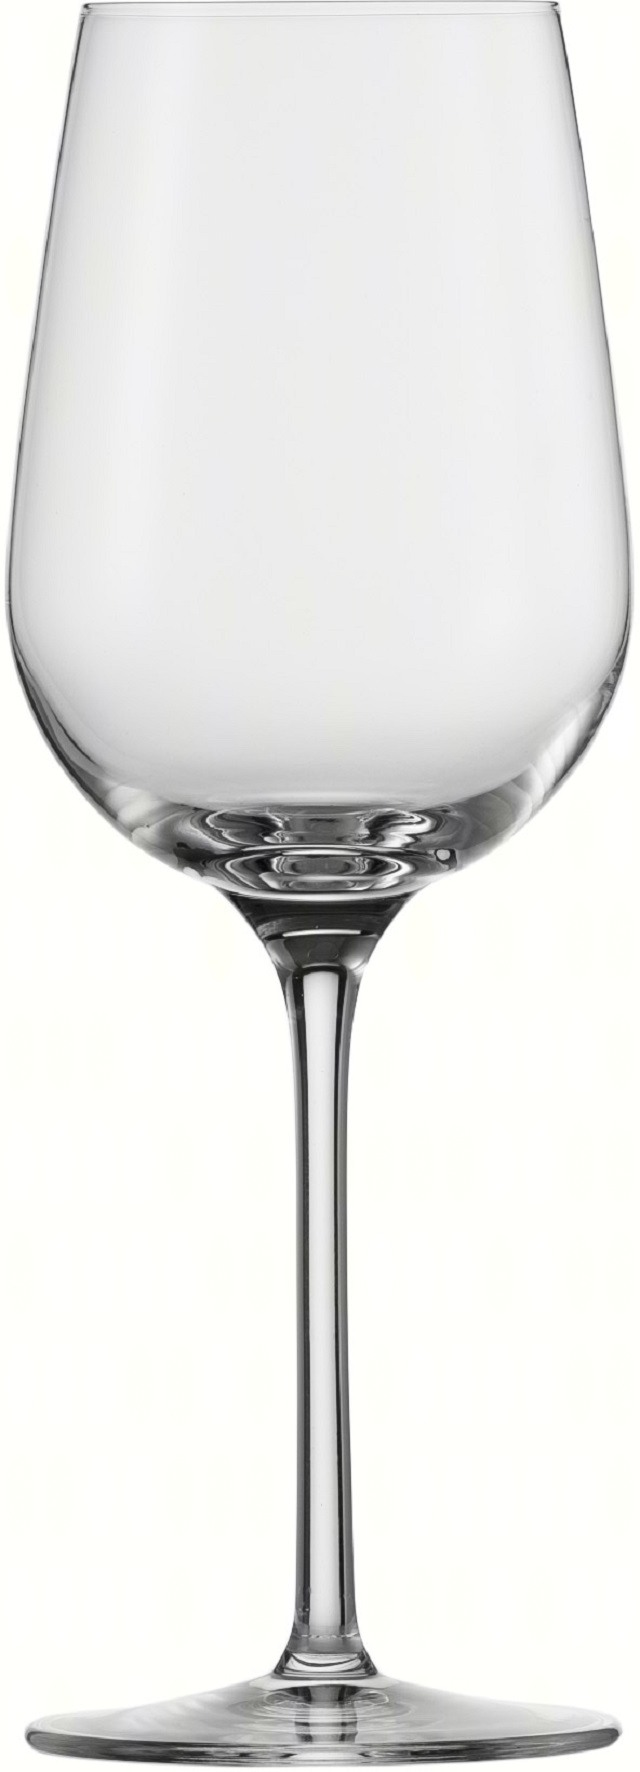 Vinezza SP Red Wine Glass (Set of 2)